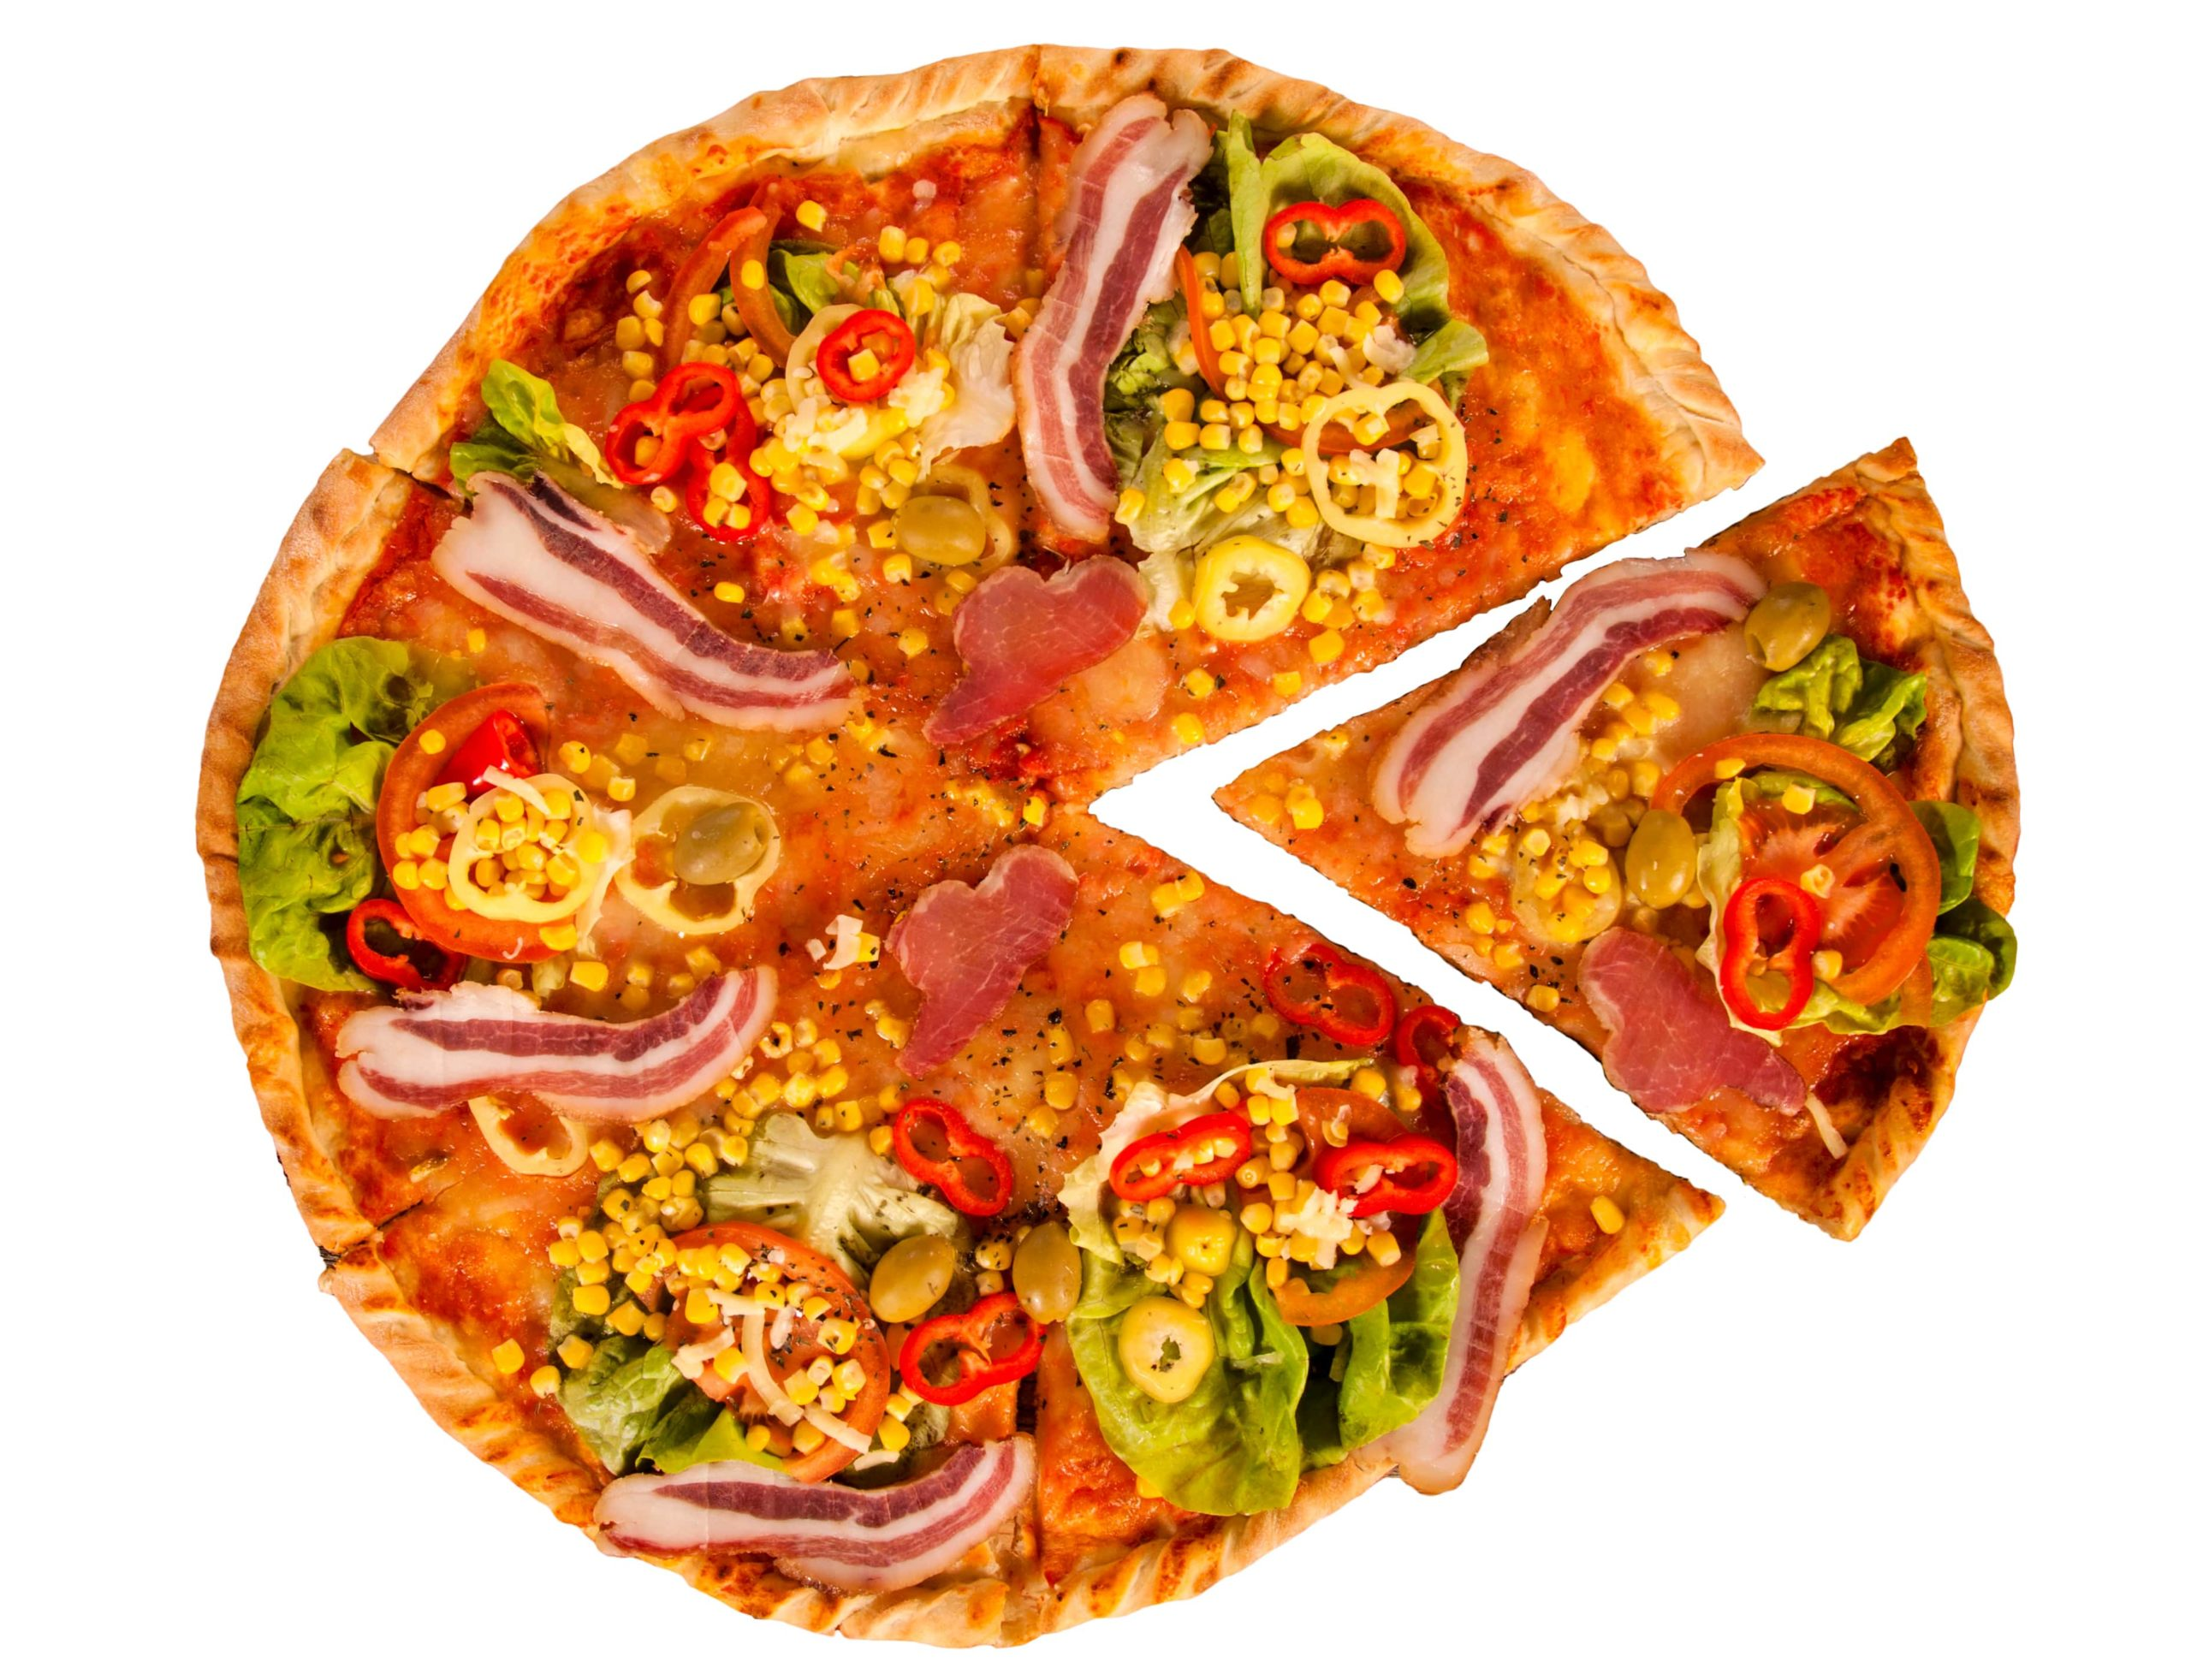 healthy-pizza-on-white-background